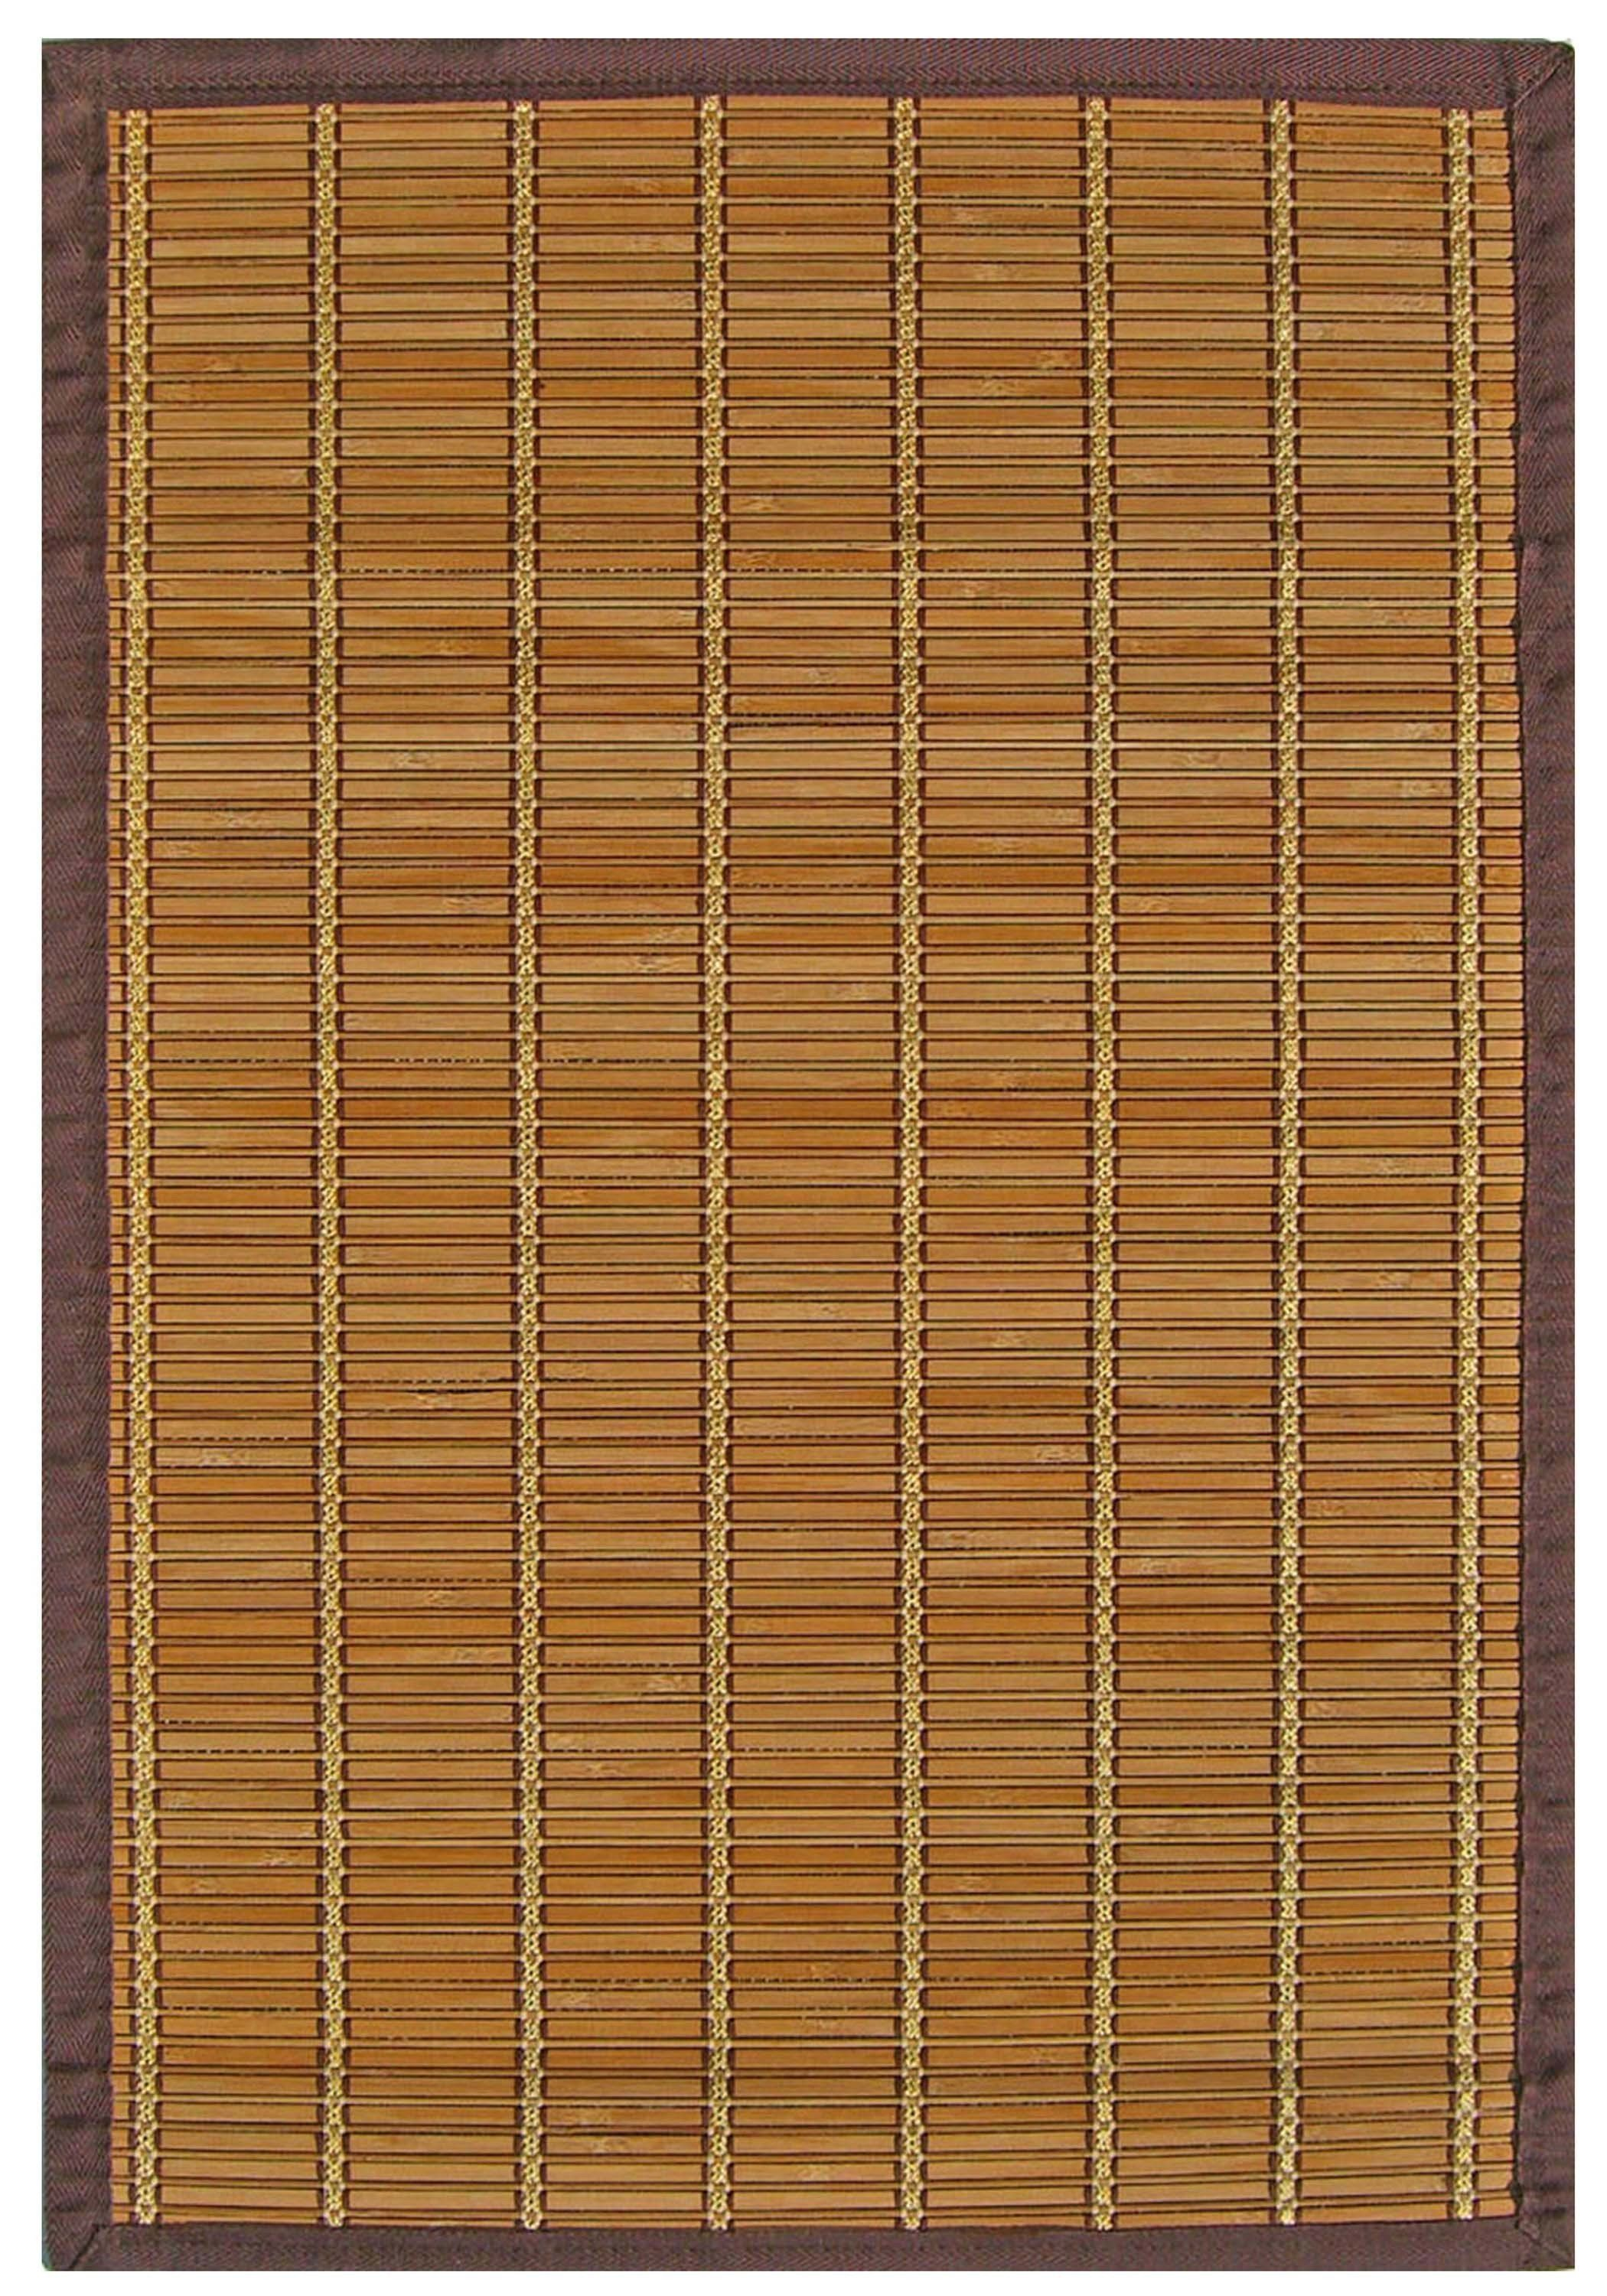 Handmade Bamboo Floor Mat With Brown Border 6x9 5x8